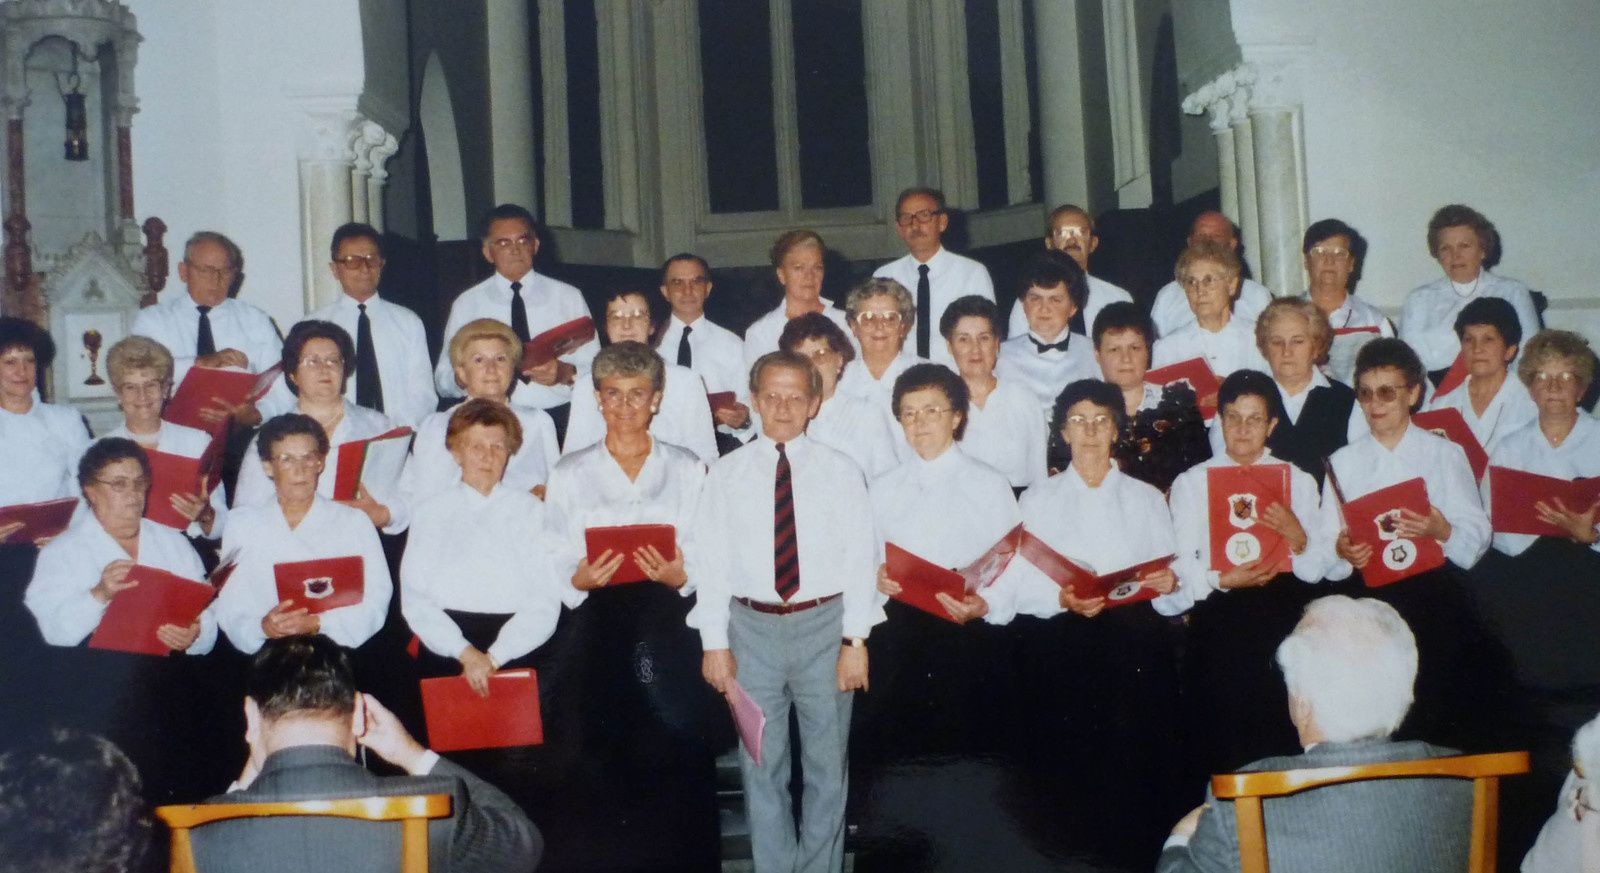 Photos souvenir de la chorale Chanteclair de Barlin